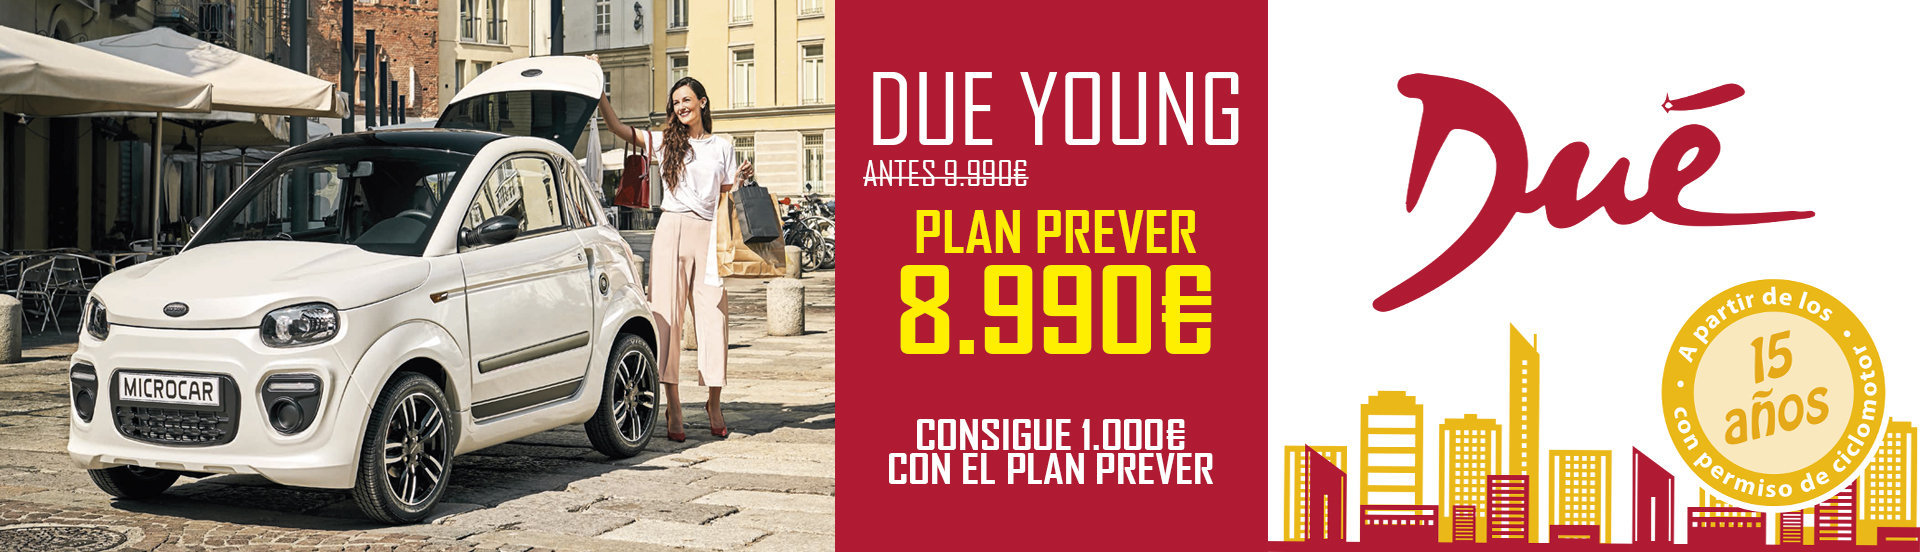 DUE YOUNG